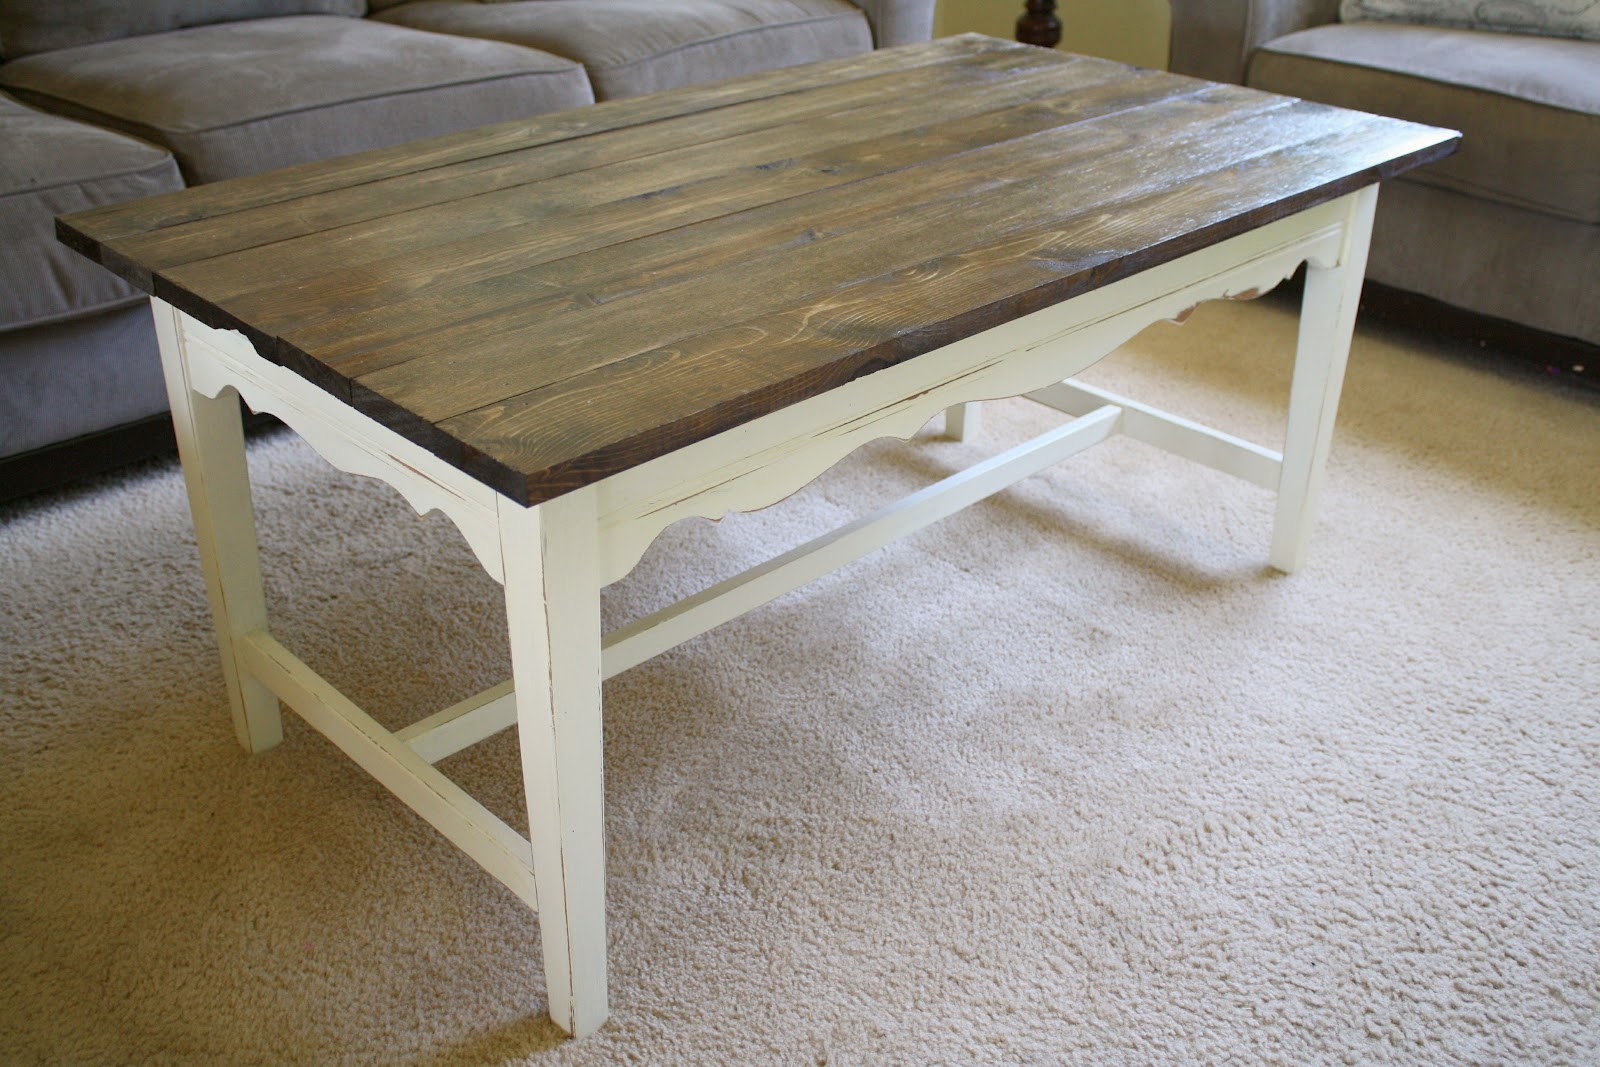 painting wood furniture whiteDIY Farmhouse Coffee Table